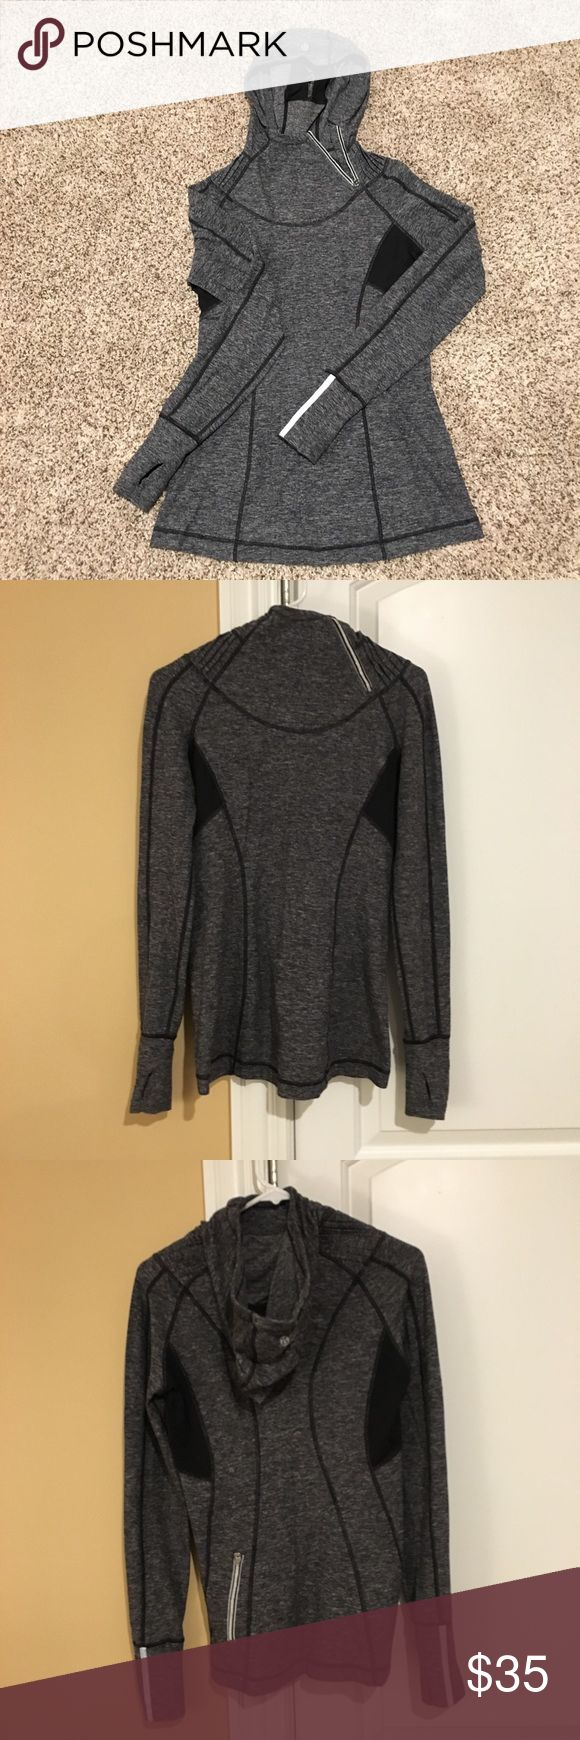 Lululemon Zip Hoodie Long Sleeve Top Re-Posh - great Lululemon zip hooded top on a marled gray pattern. Vented & reflective details, thumb holes, ponytail hole in hood. Great top! Just didn't like how it fit me.   No modeling.   Please submit offers via offer button. lululemon athletica Tops